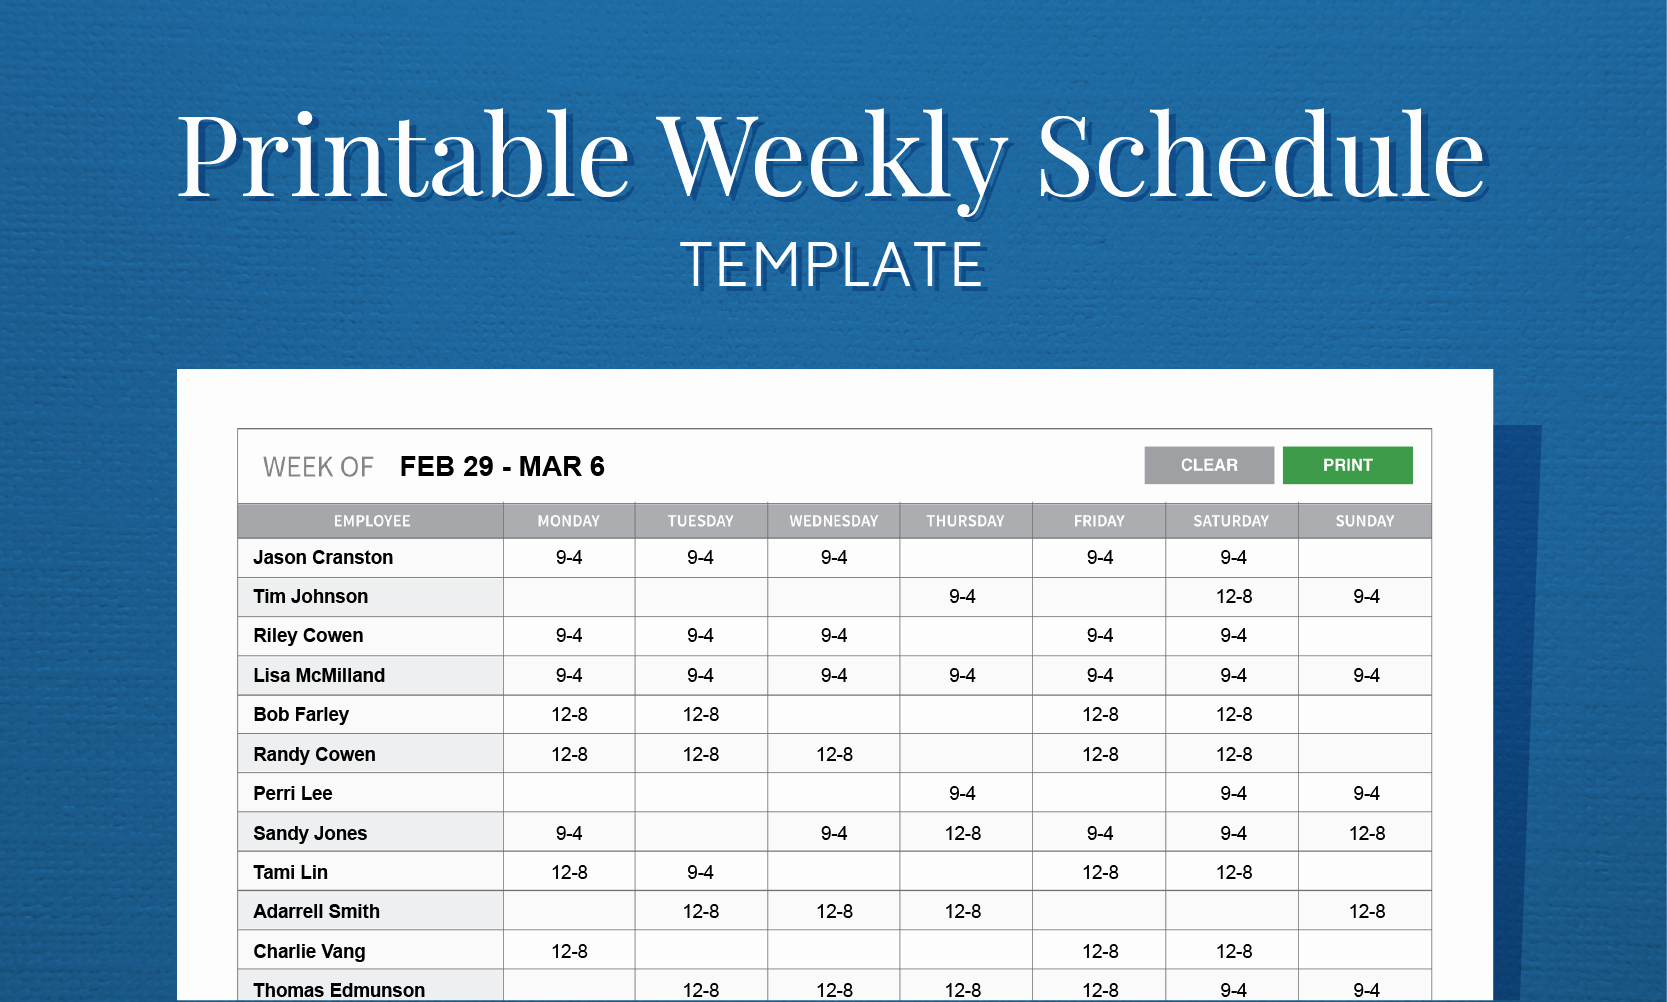 Free Weekly Work Schedule Template New Free Printable Weekly Work Schedule Template for Employee